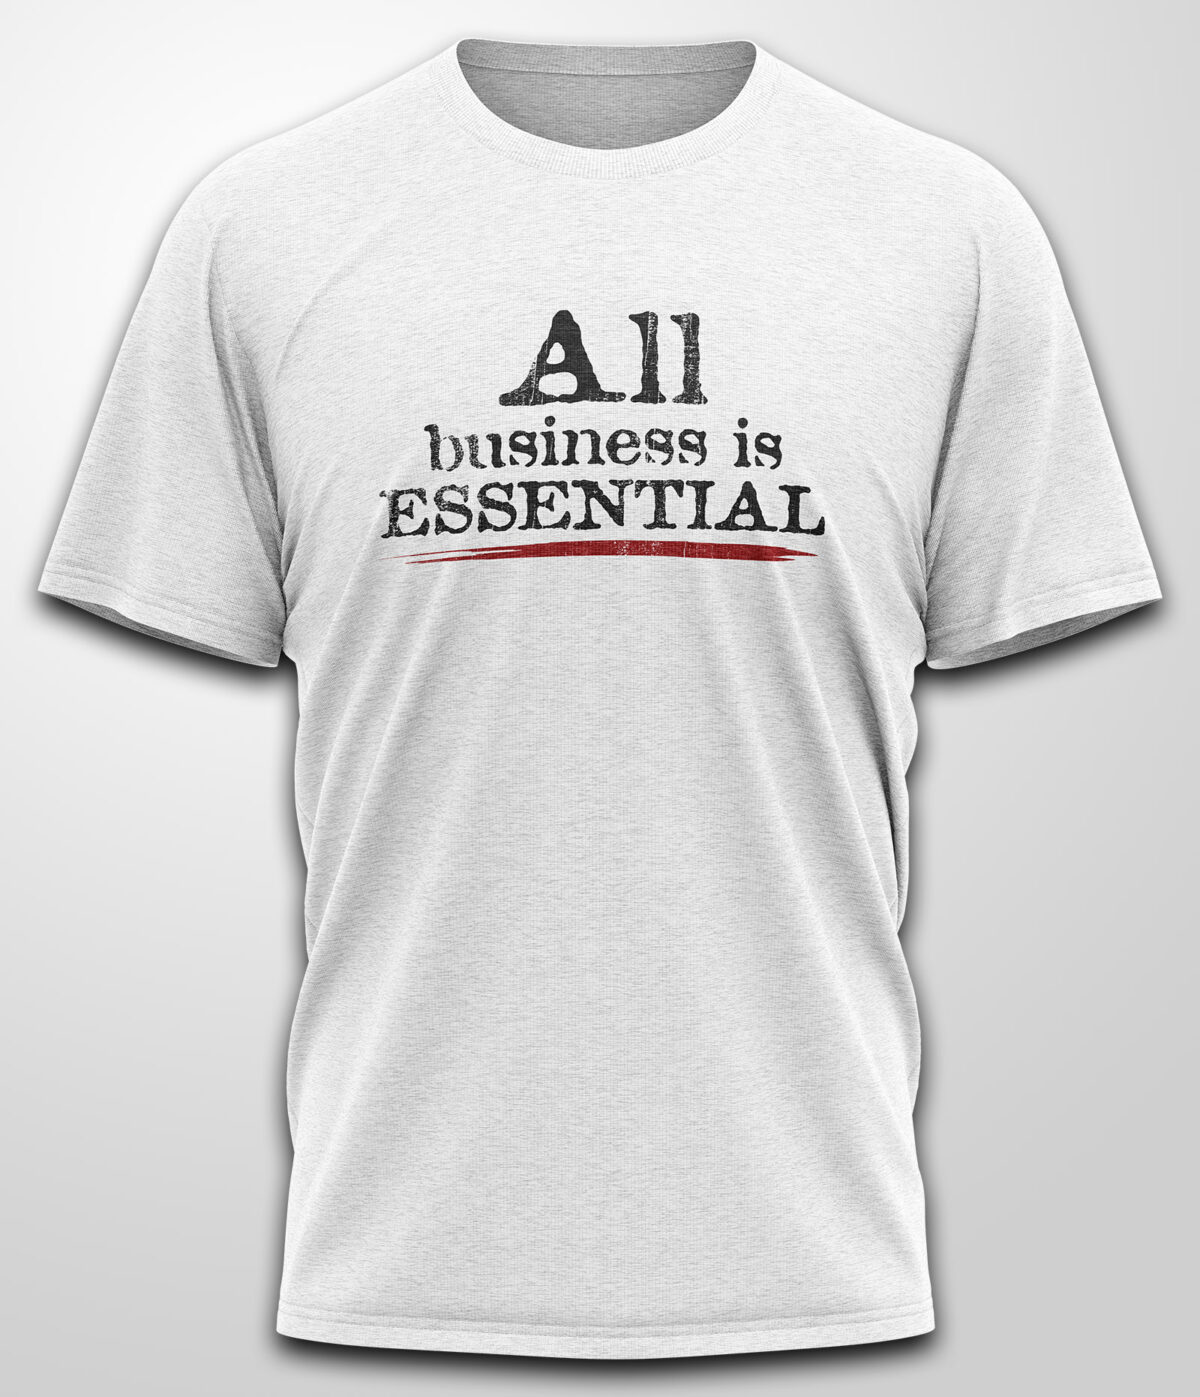 All business is essential shirt